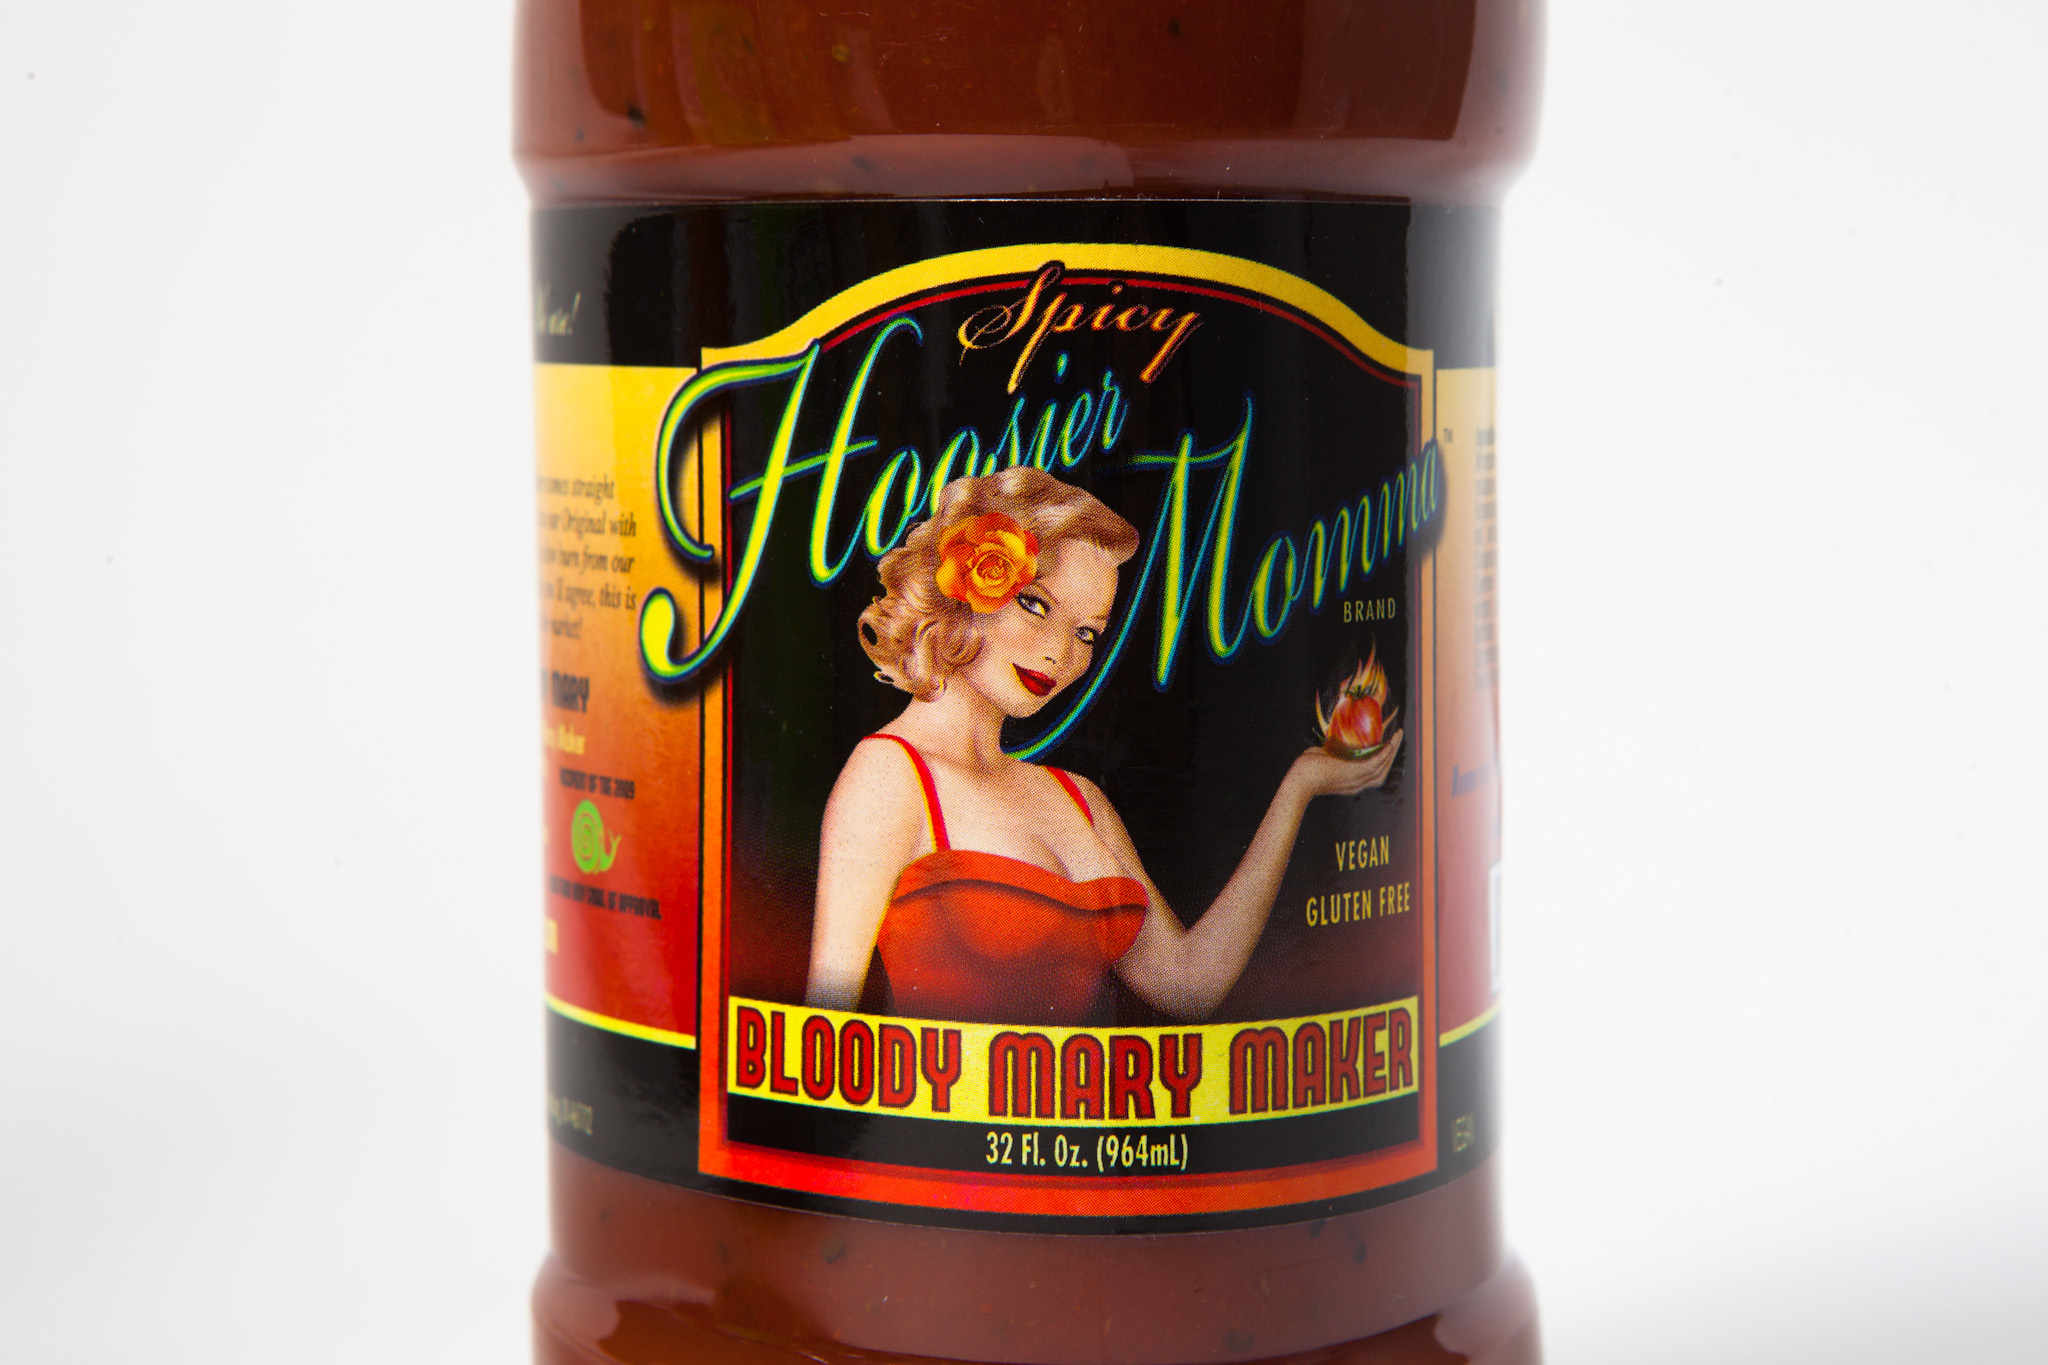 Hoosier mama spicy bloody mary maker